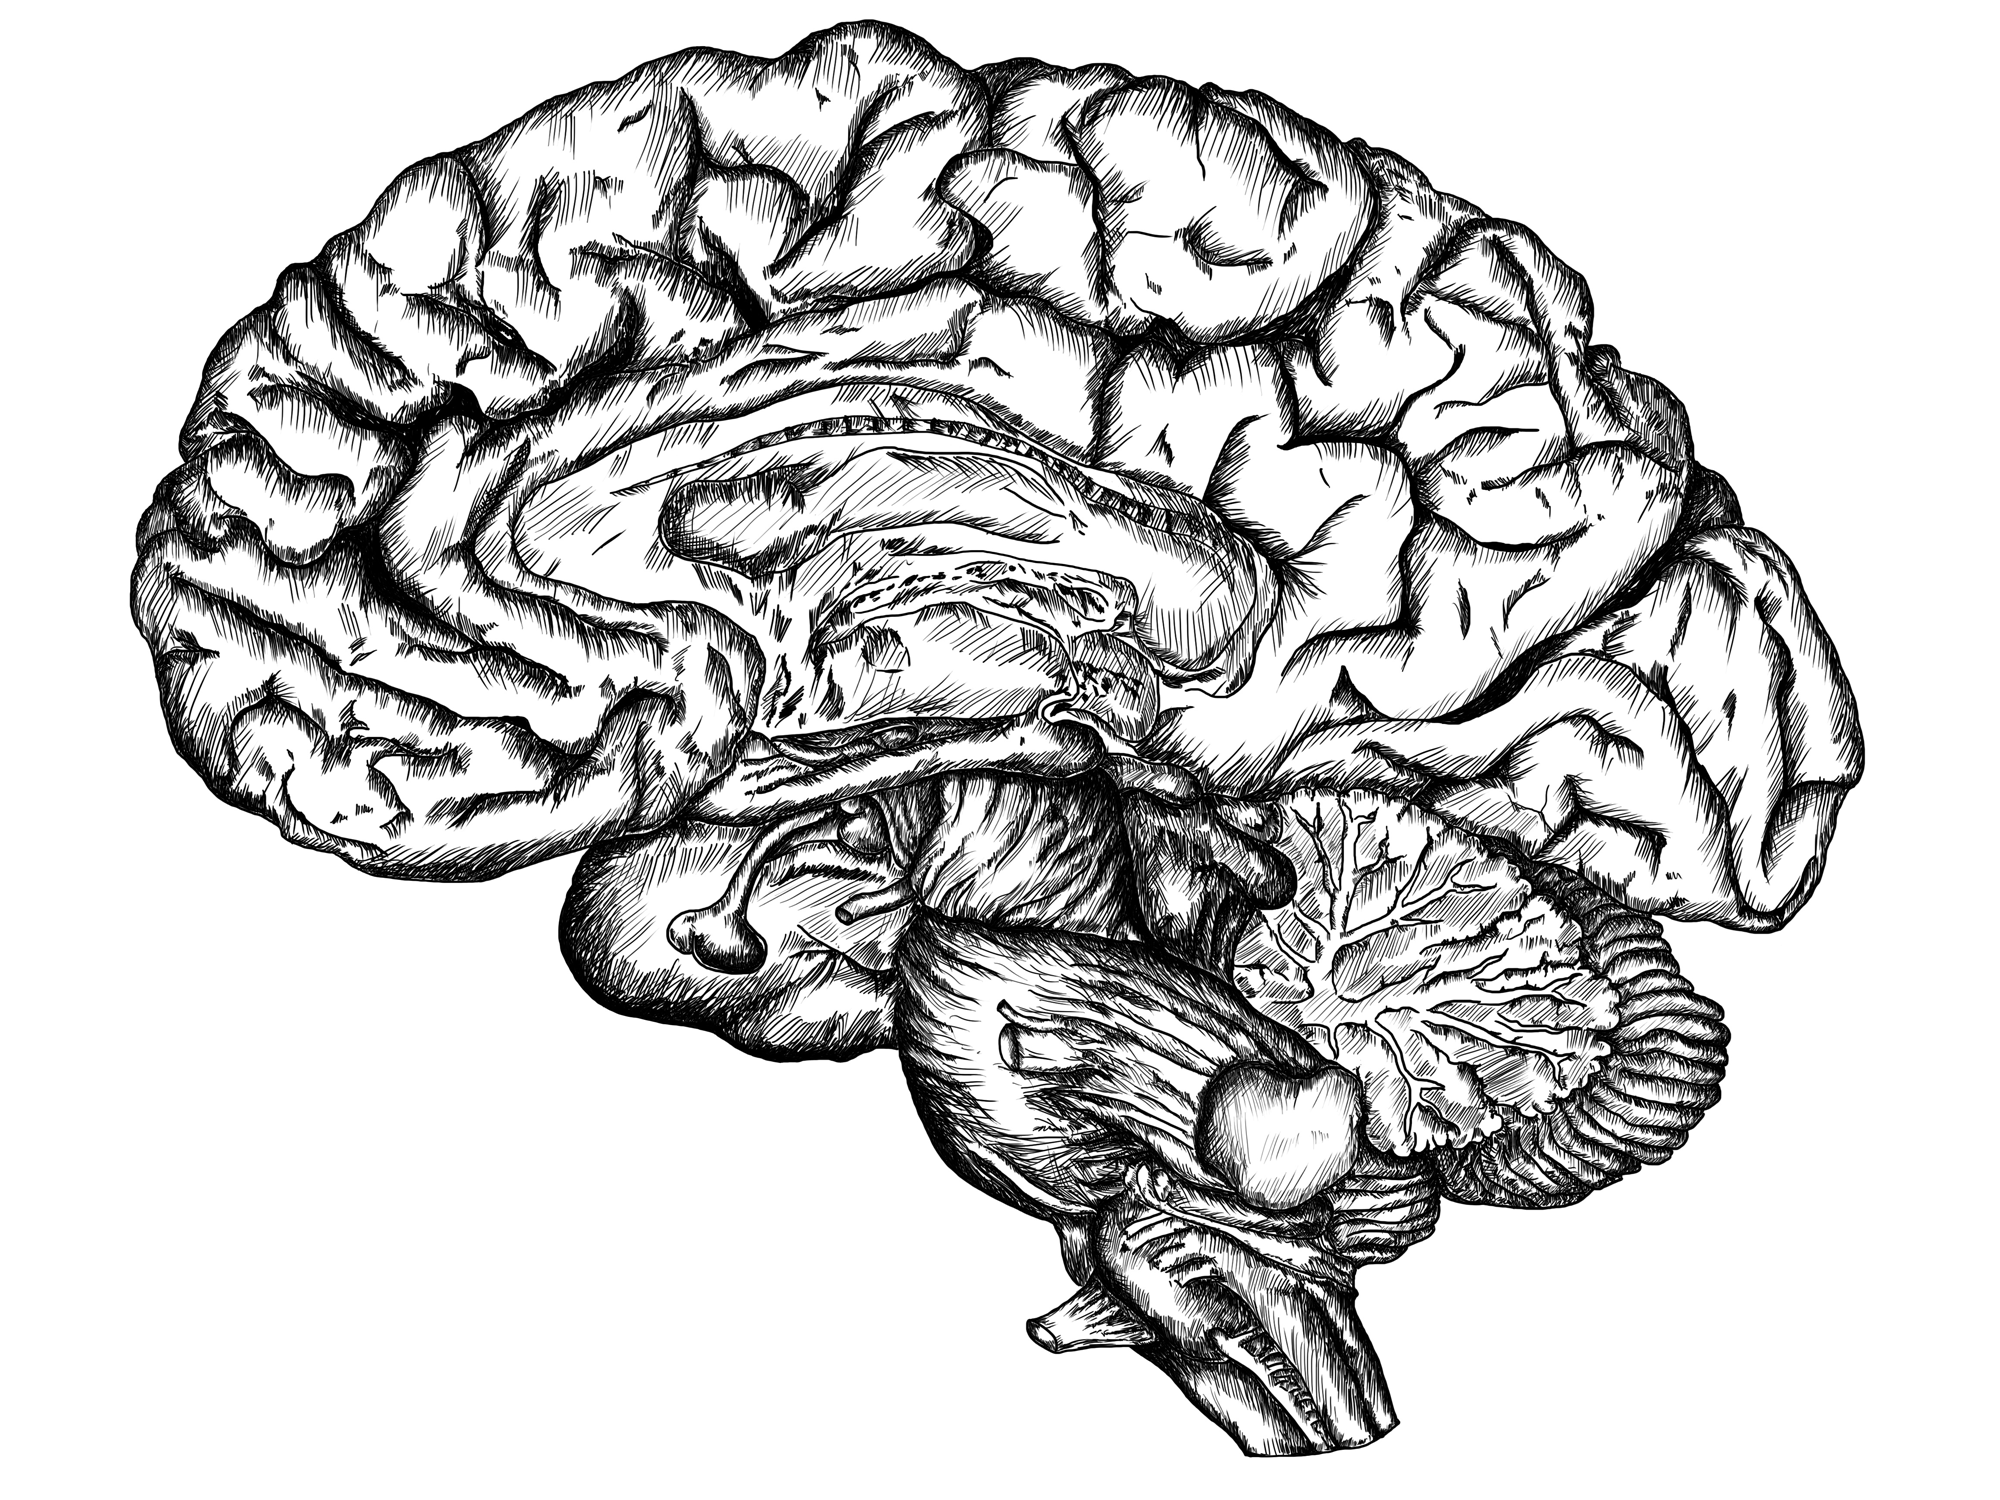 black and white brain diagram pictures to pin on pinterest